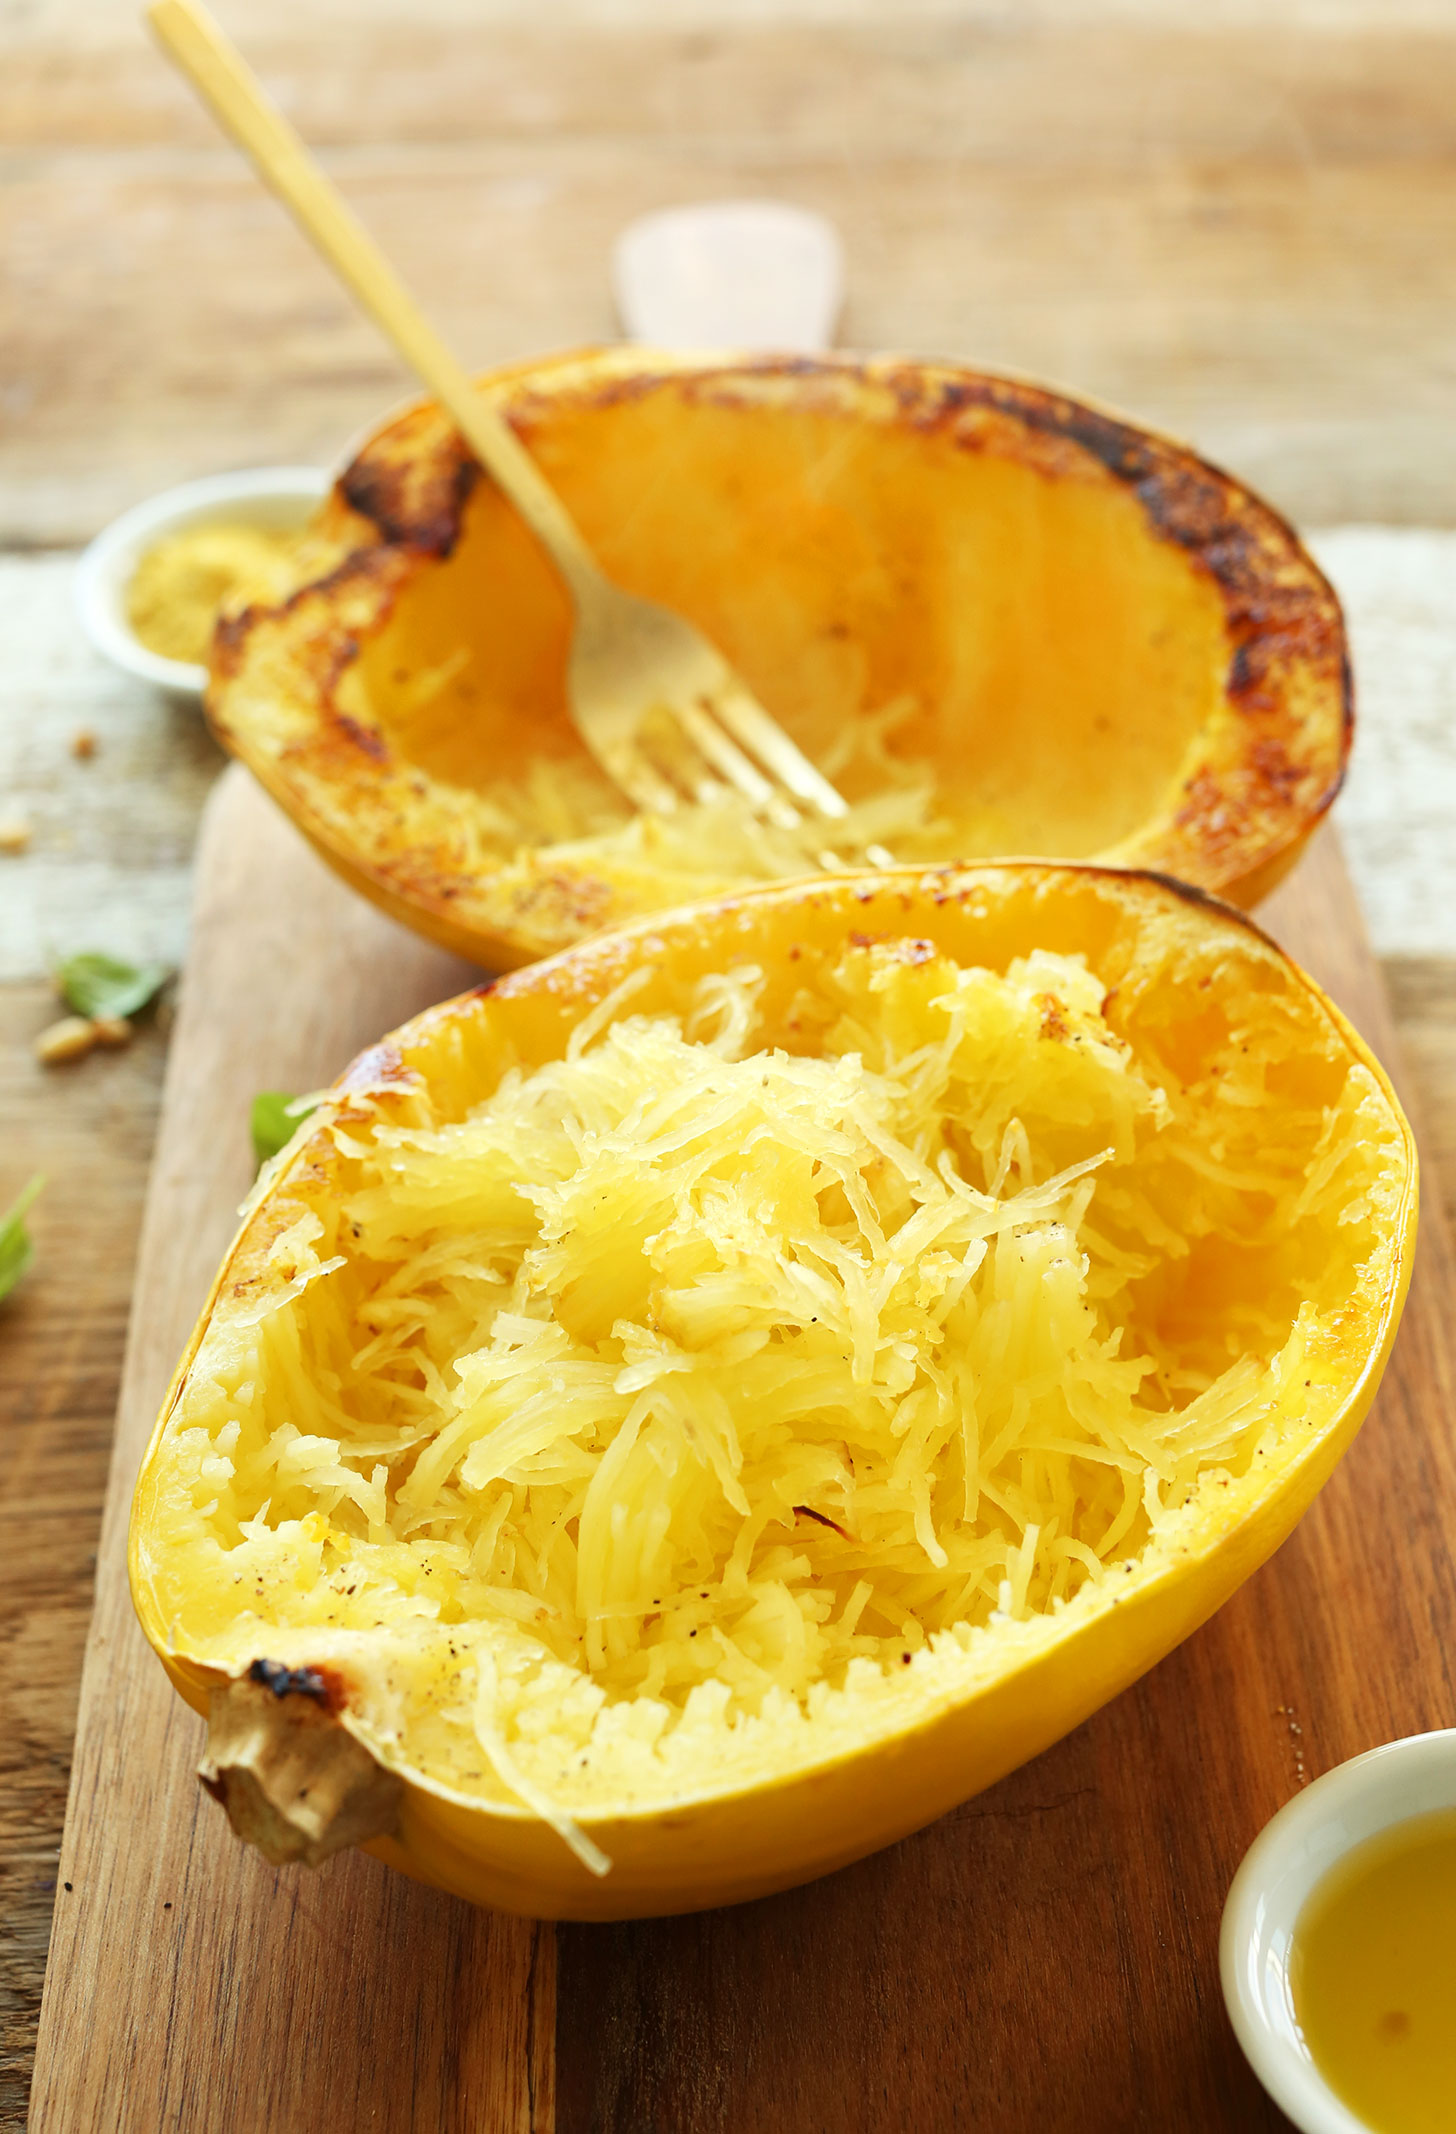 Freshly baked spaghetti squash prepared into strands for making an easy gluten-free vegan dinner